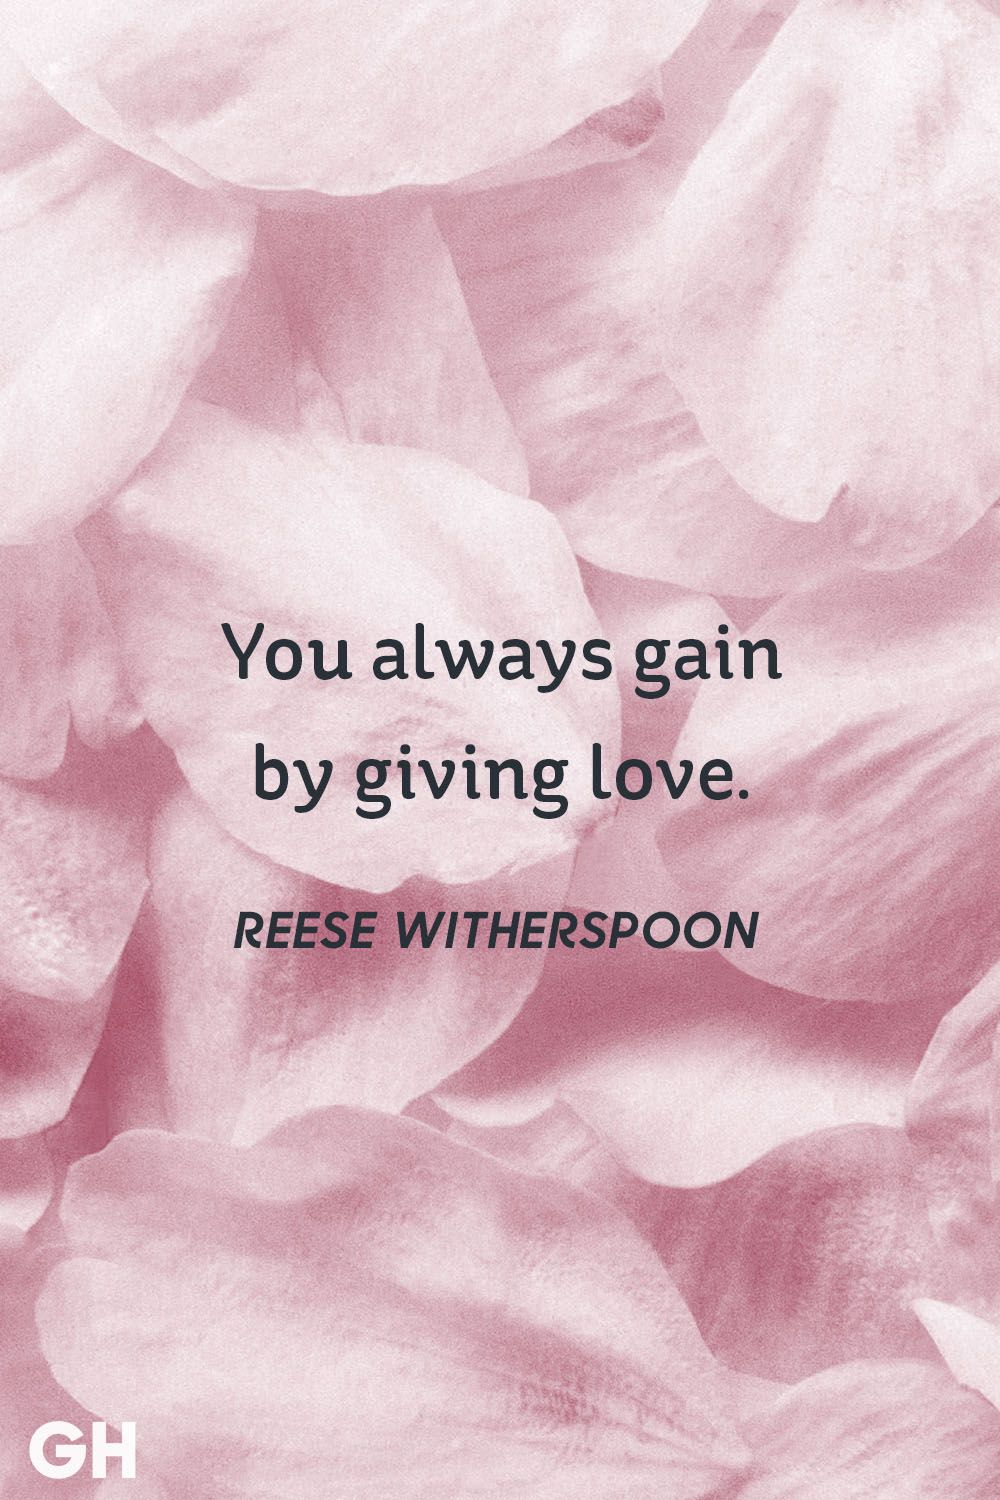 Heart Love Quotes 50 Best Love Quotes of All Time   Cute Famous Sayings About Love Heart Love Quotes